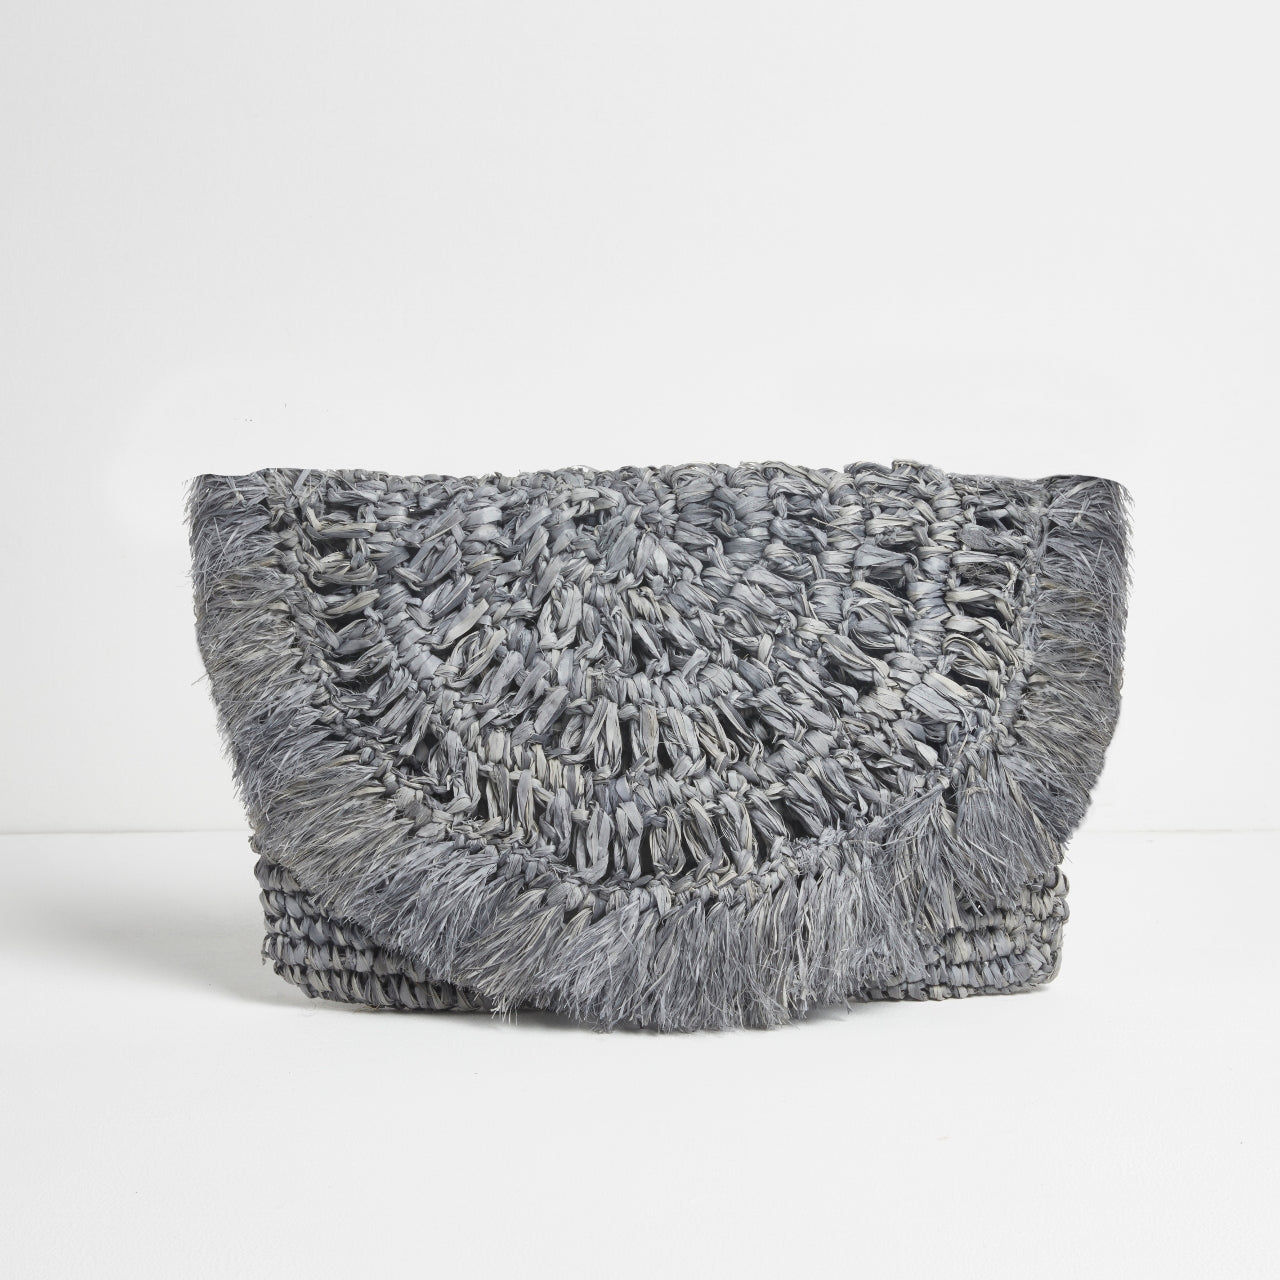 Aruba Clutch Bag